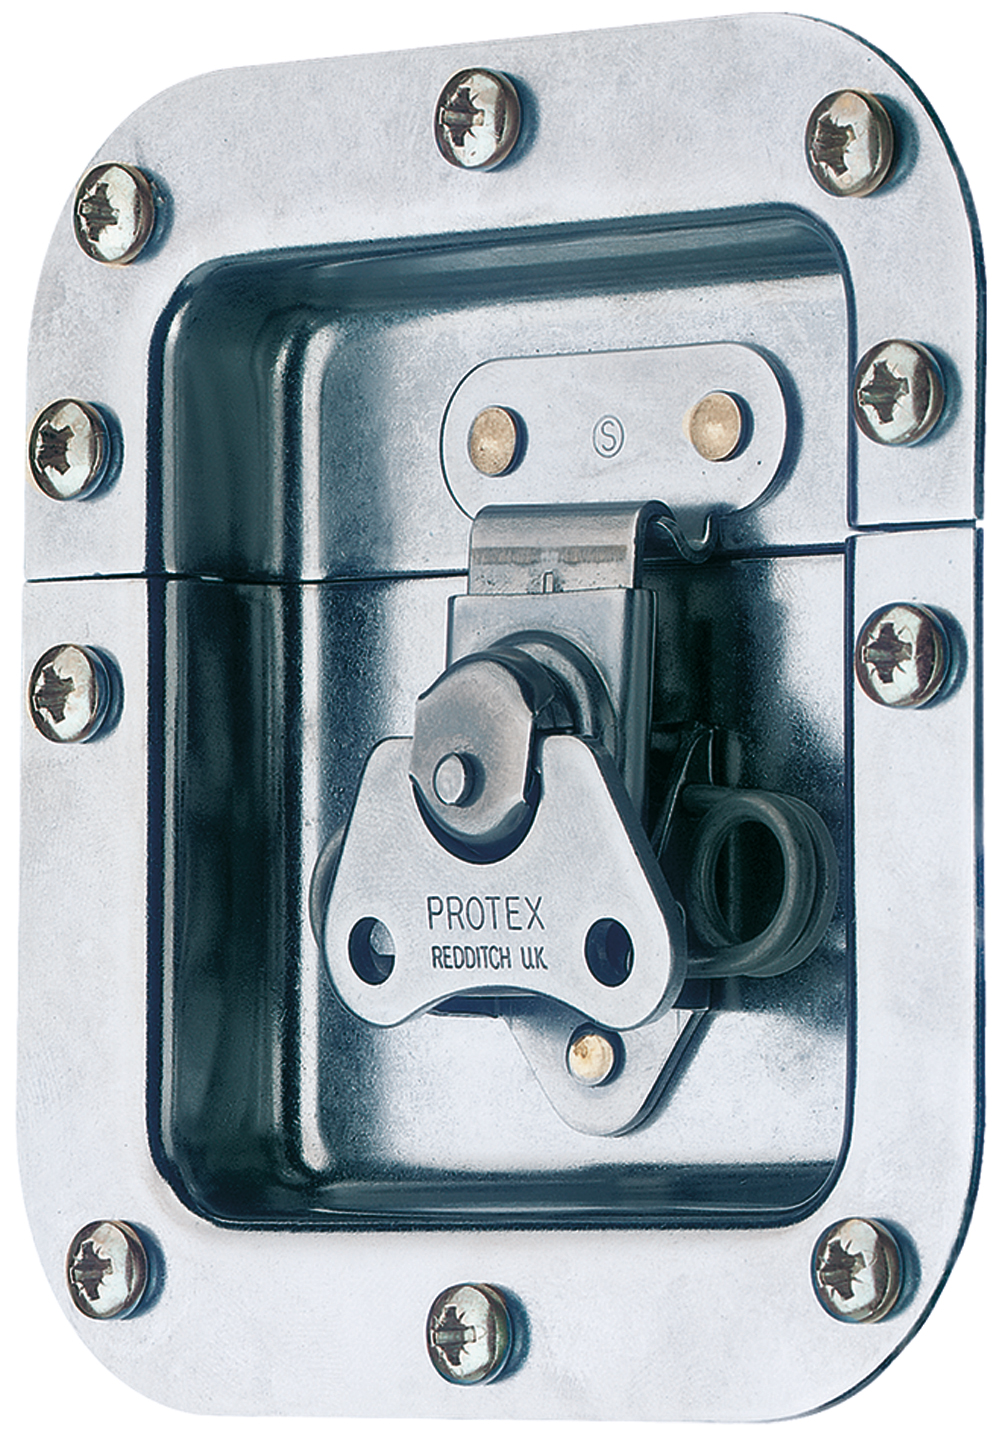 Rotary Turn Latch in Recess Dish Spring Loaded Mild Steel Zinc Plate Passivate (Silver Blue)